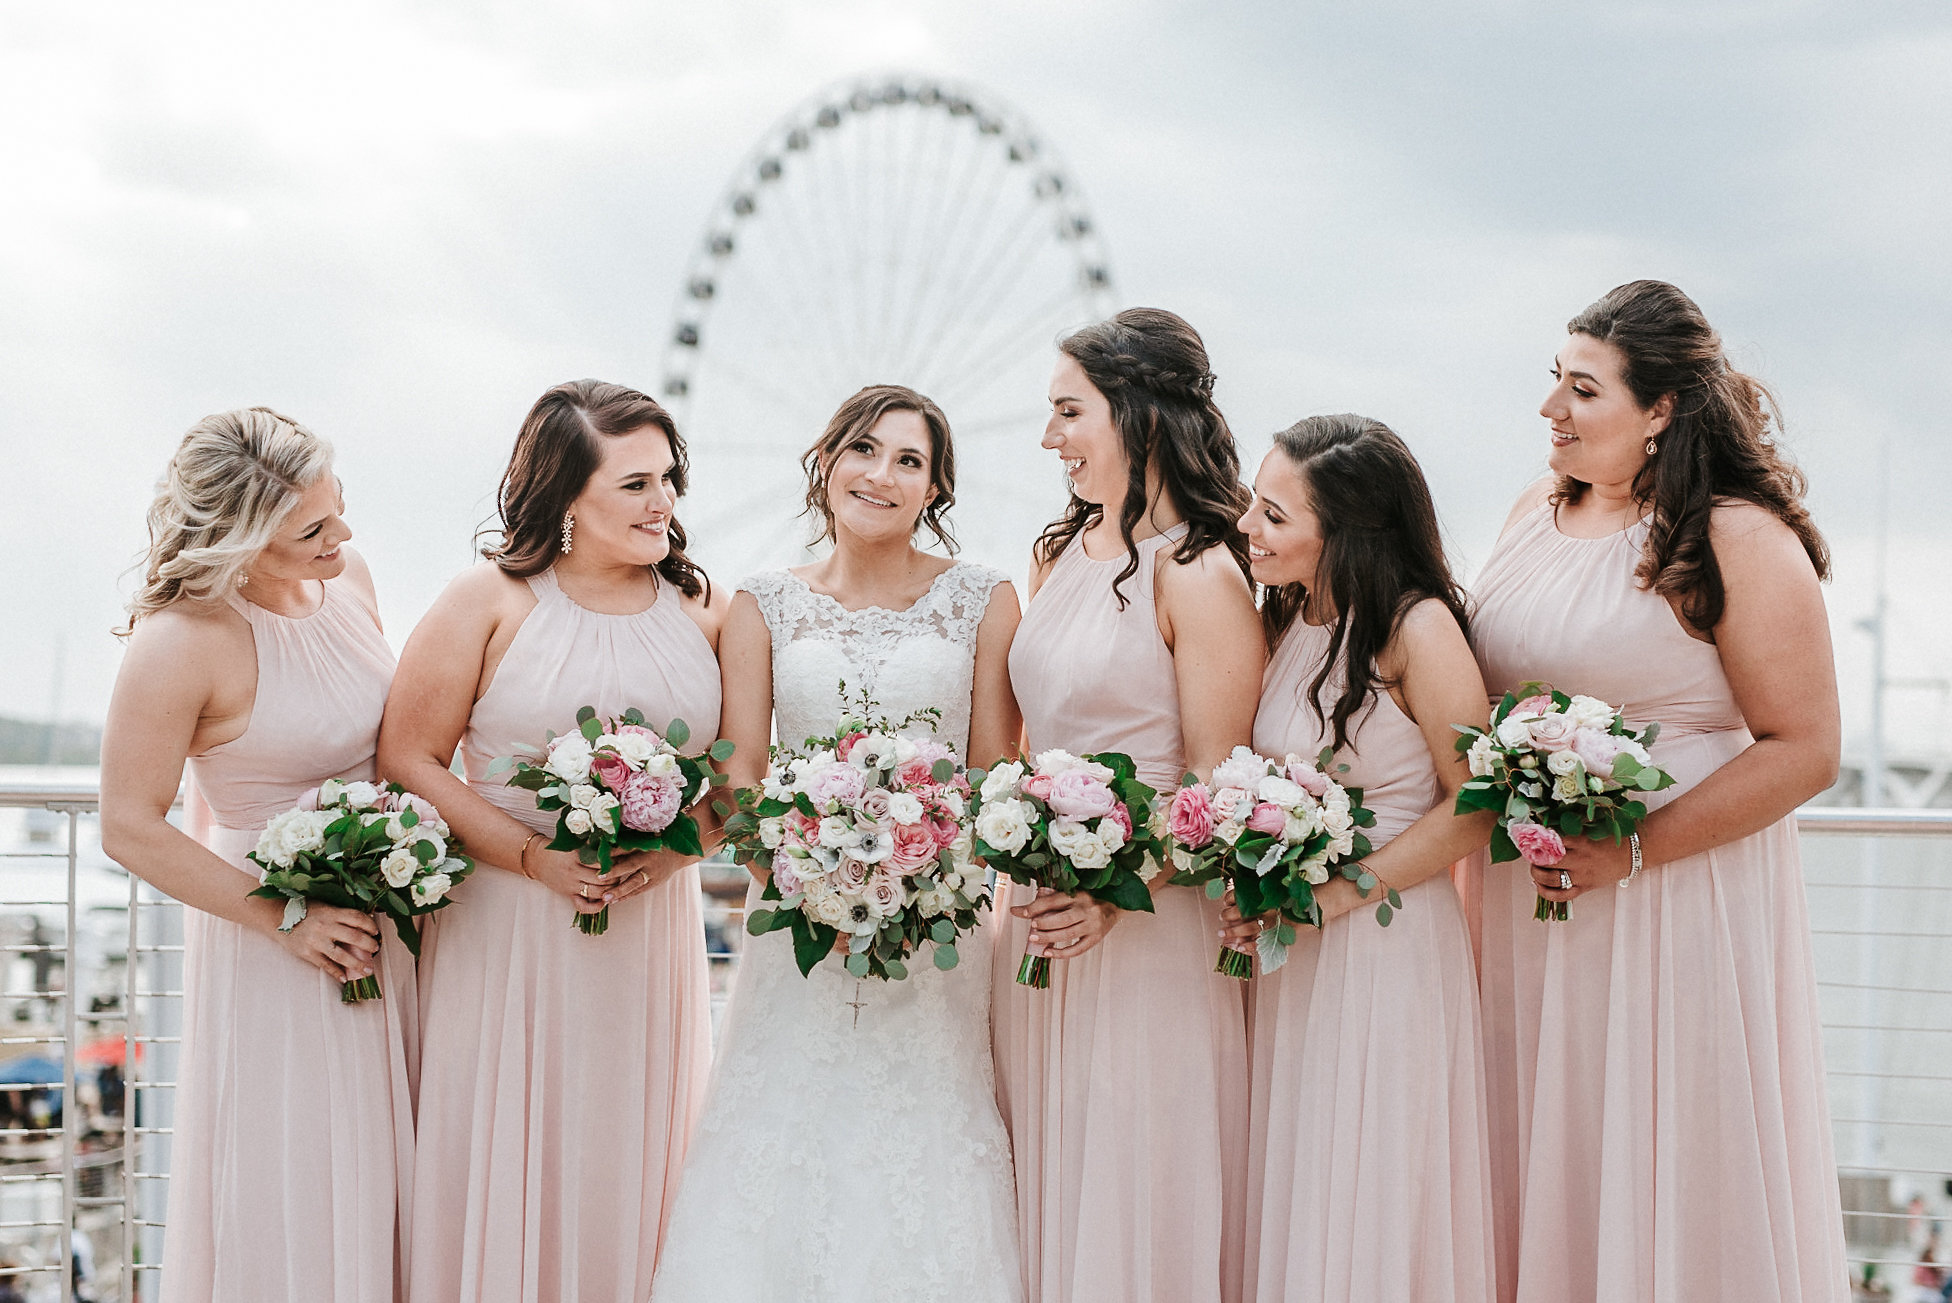 5 Bachelorette Party Ideas to Get The Best Photo Memories